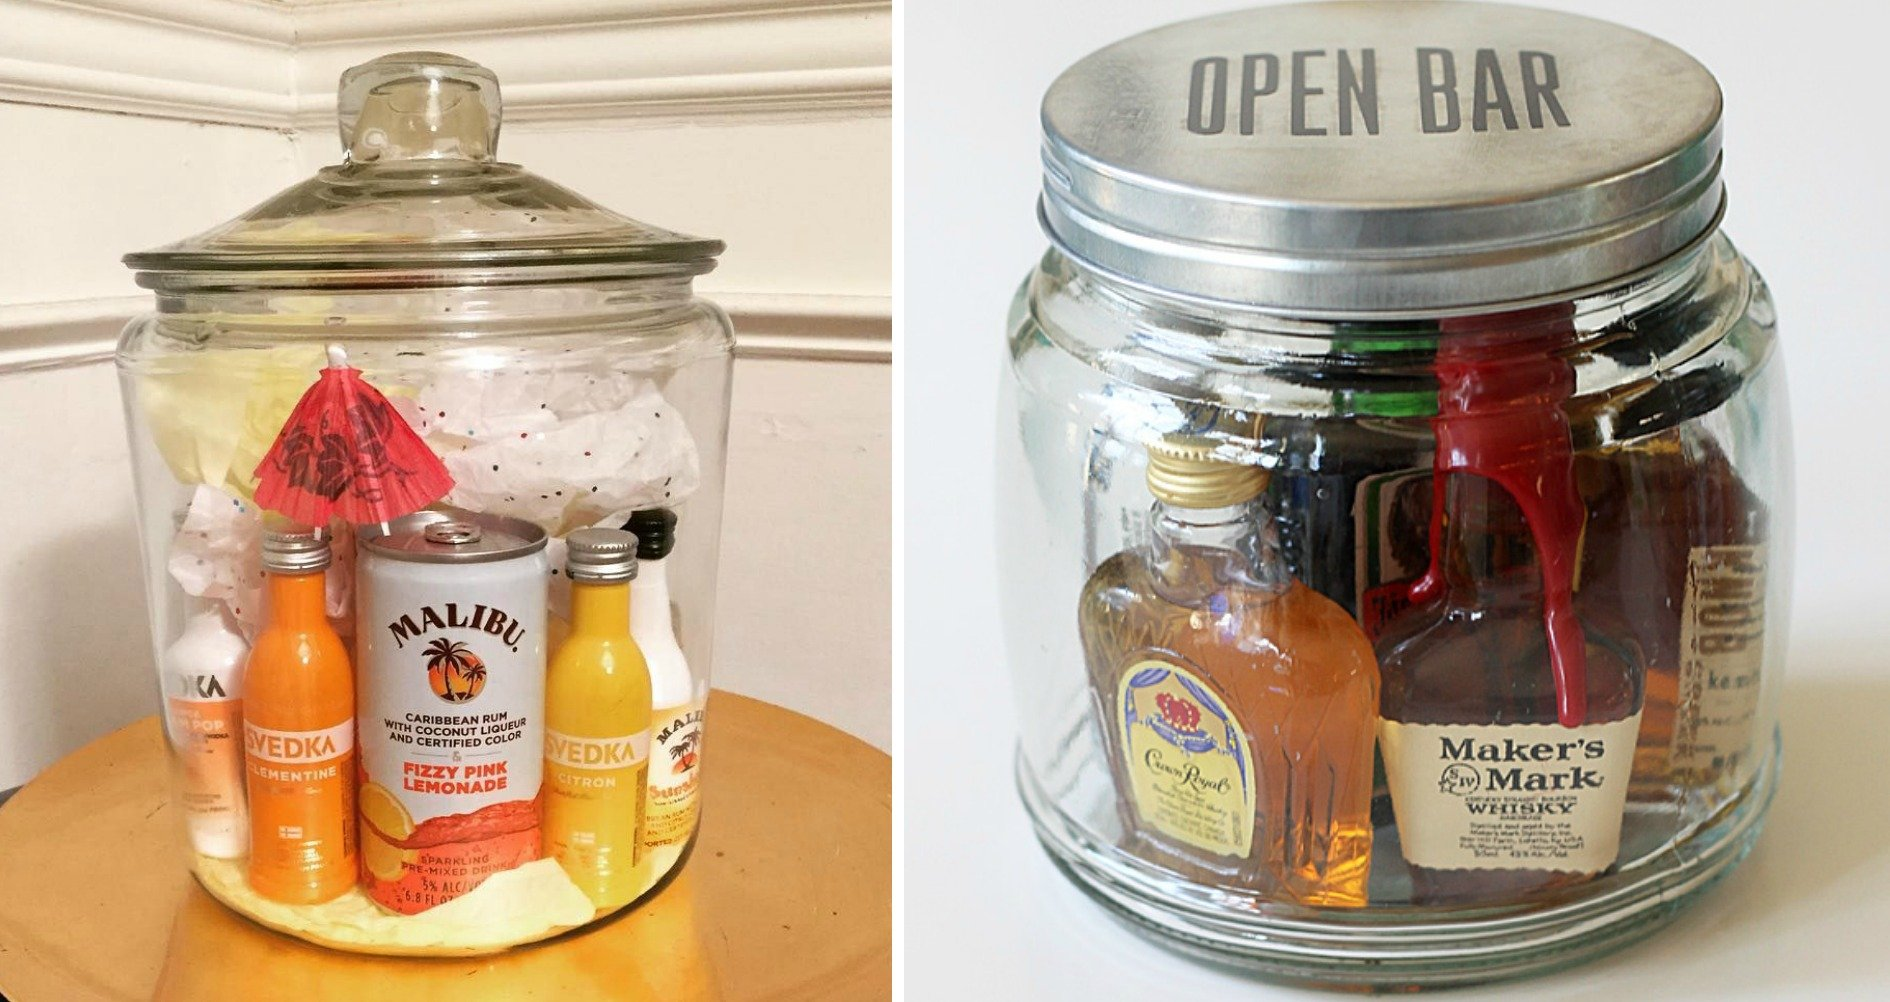 Bar In A Jar Gifts Are The Perfect Gift Kitchen Fun With My 3 Sons